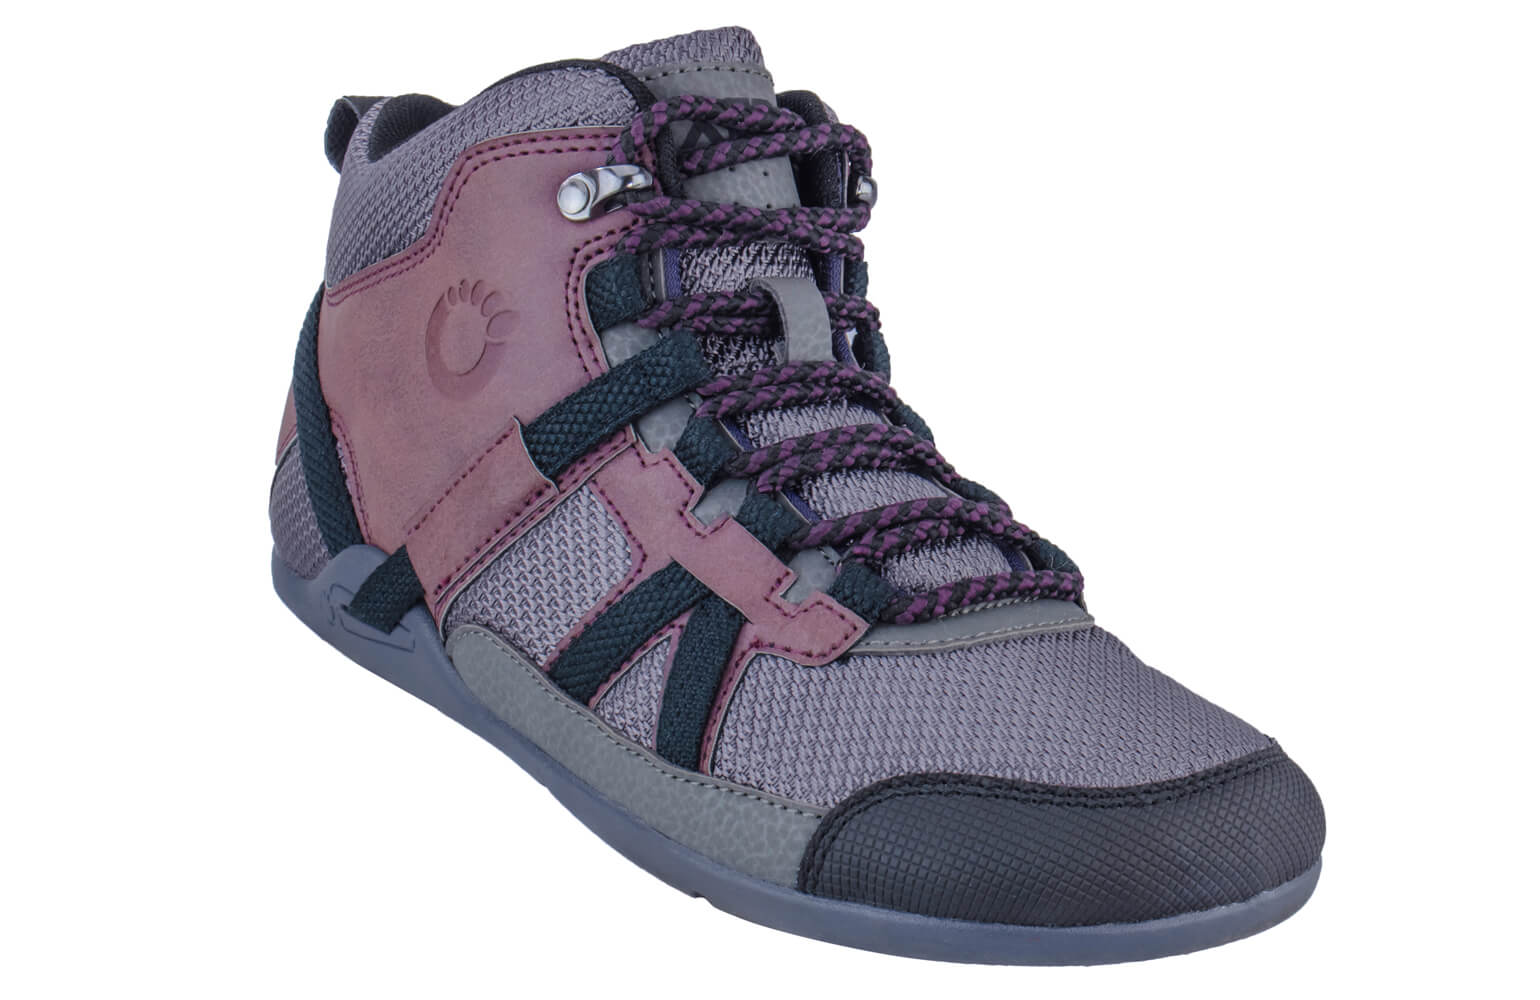 e47ea5e9a004 The Best Barefoot Running Shoes for Men and Women - Xero Shoes